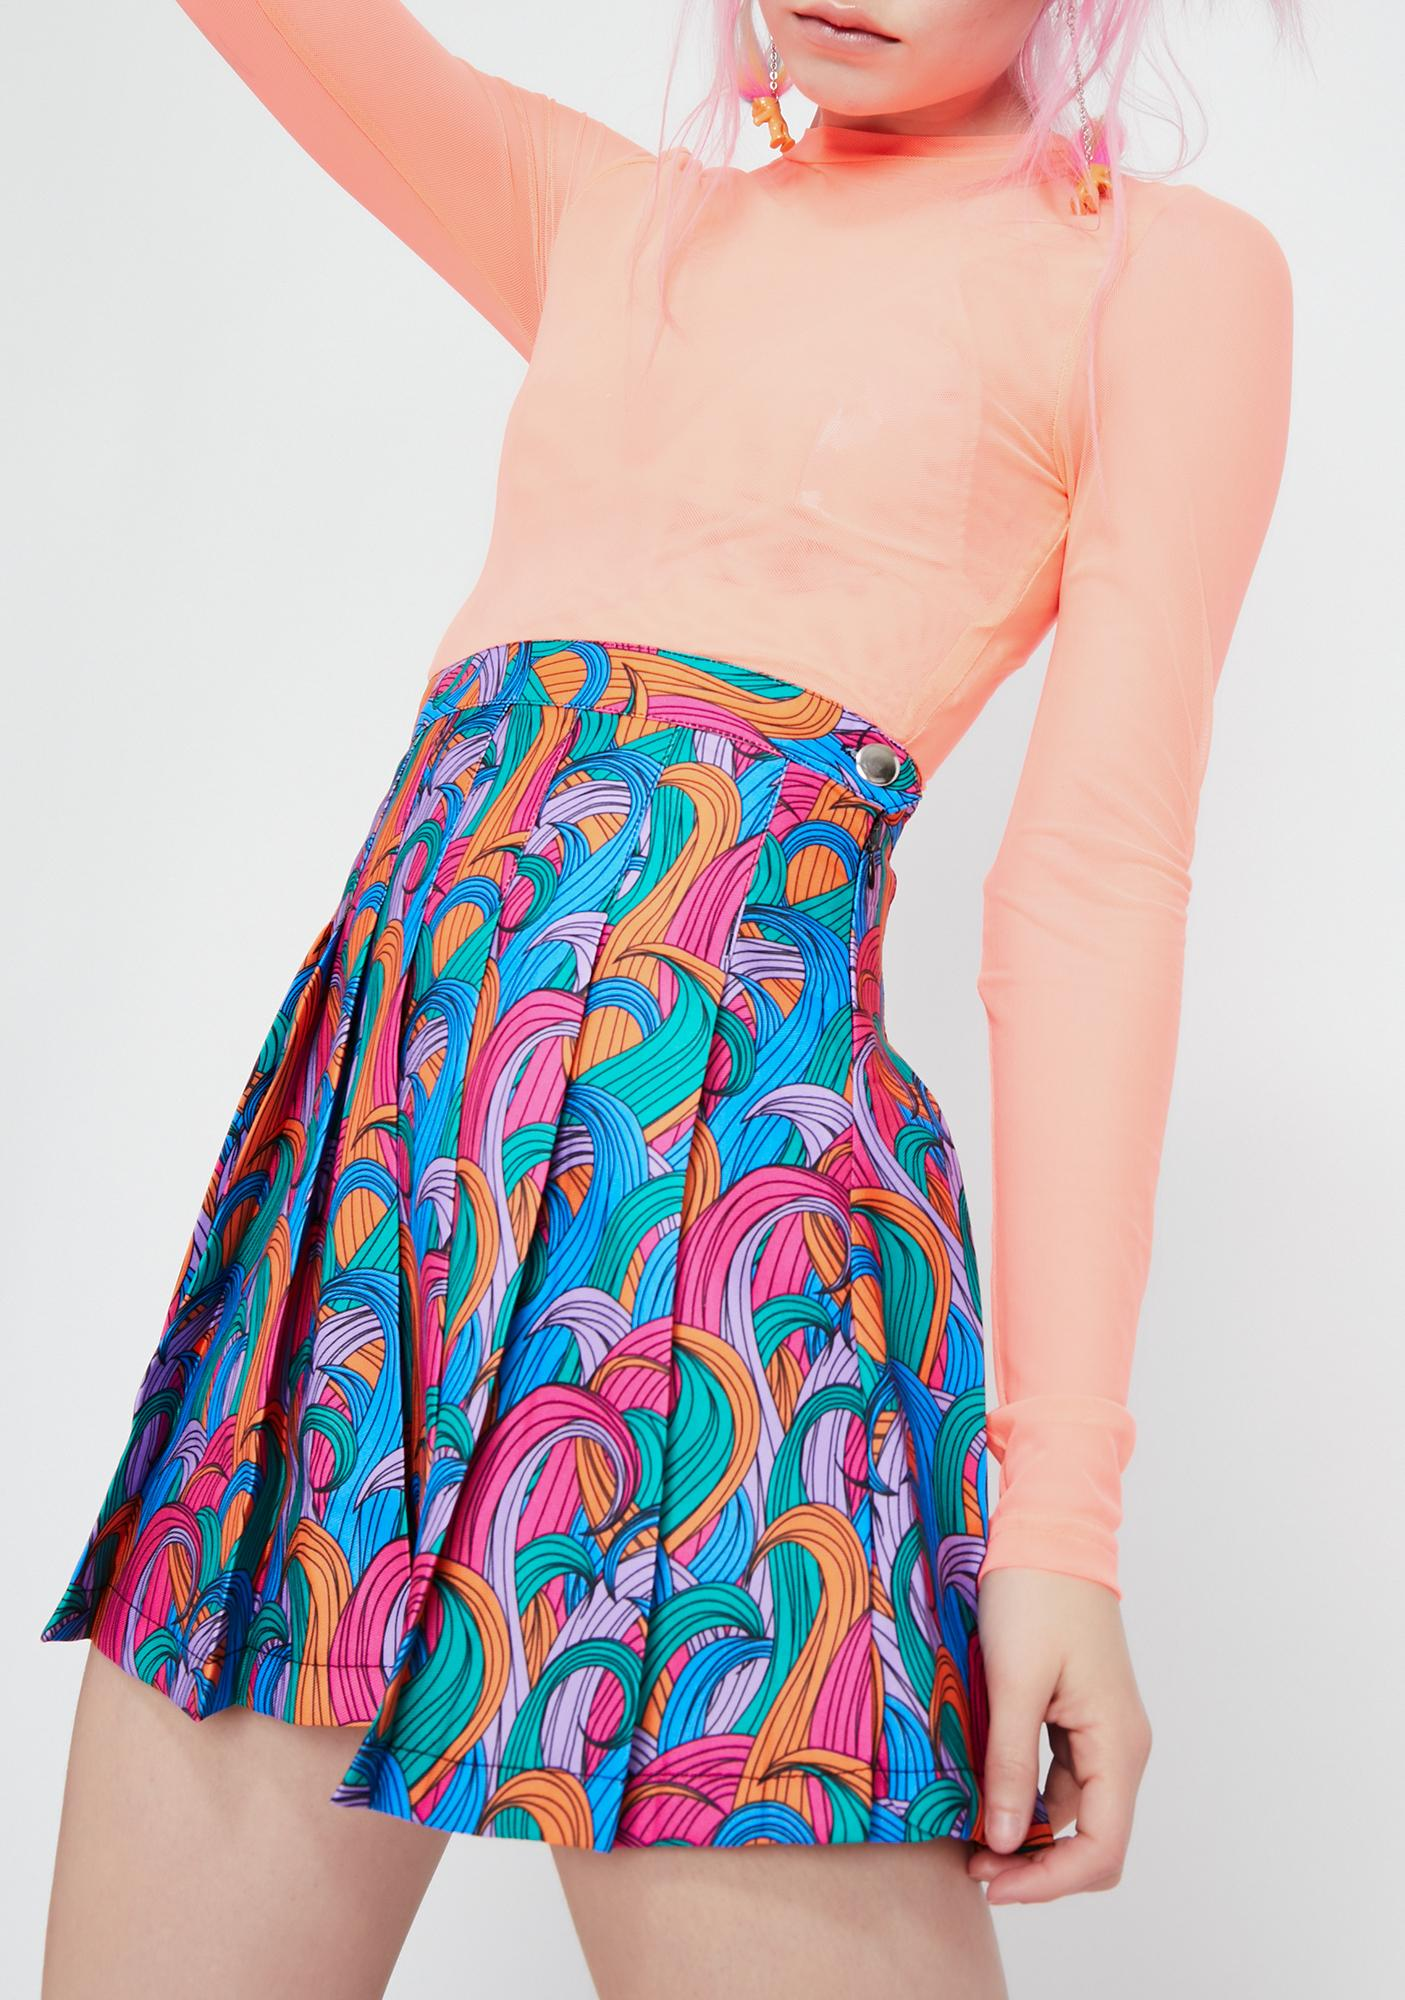 Good Luck Trolls x Dolls Kill Troll Rainbow Swirl Skirt